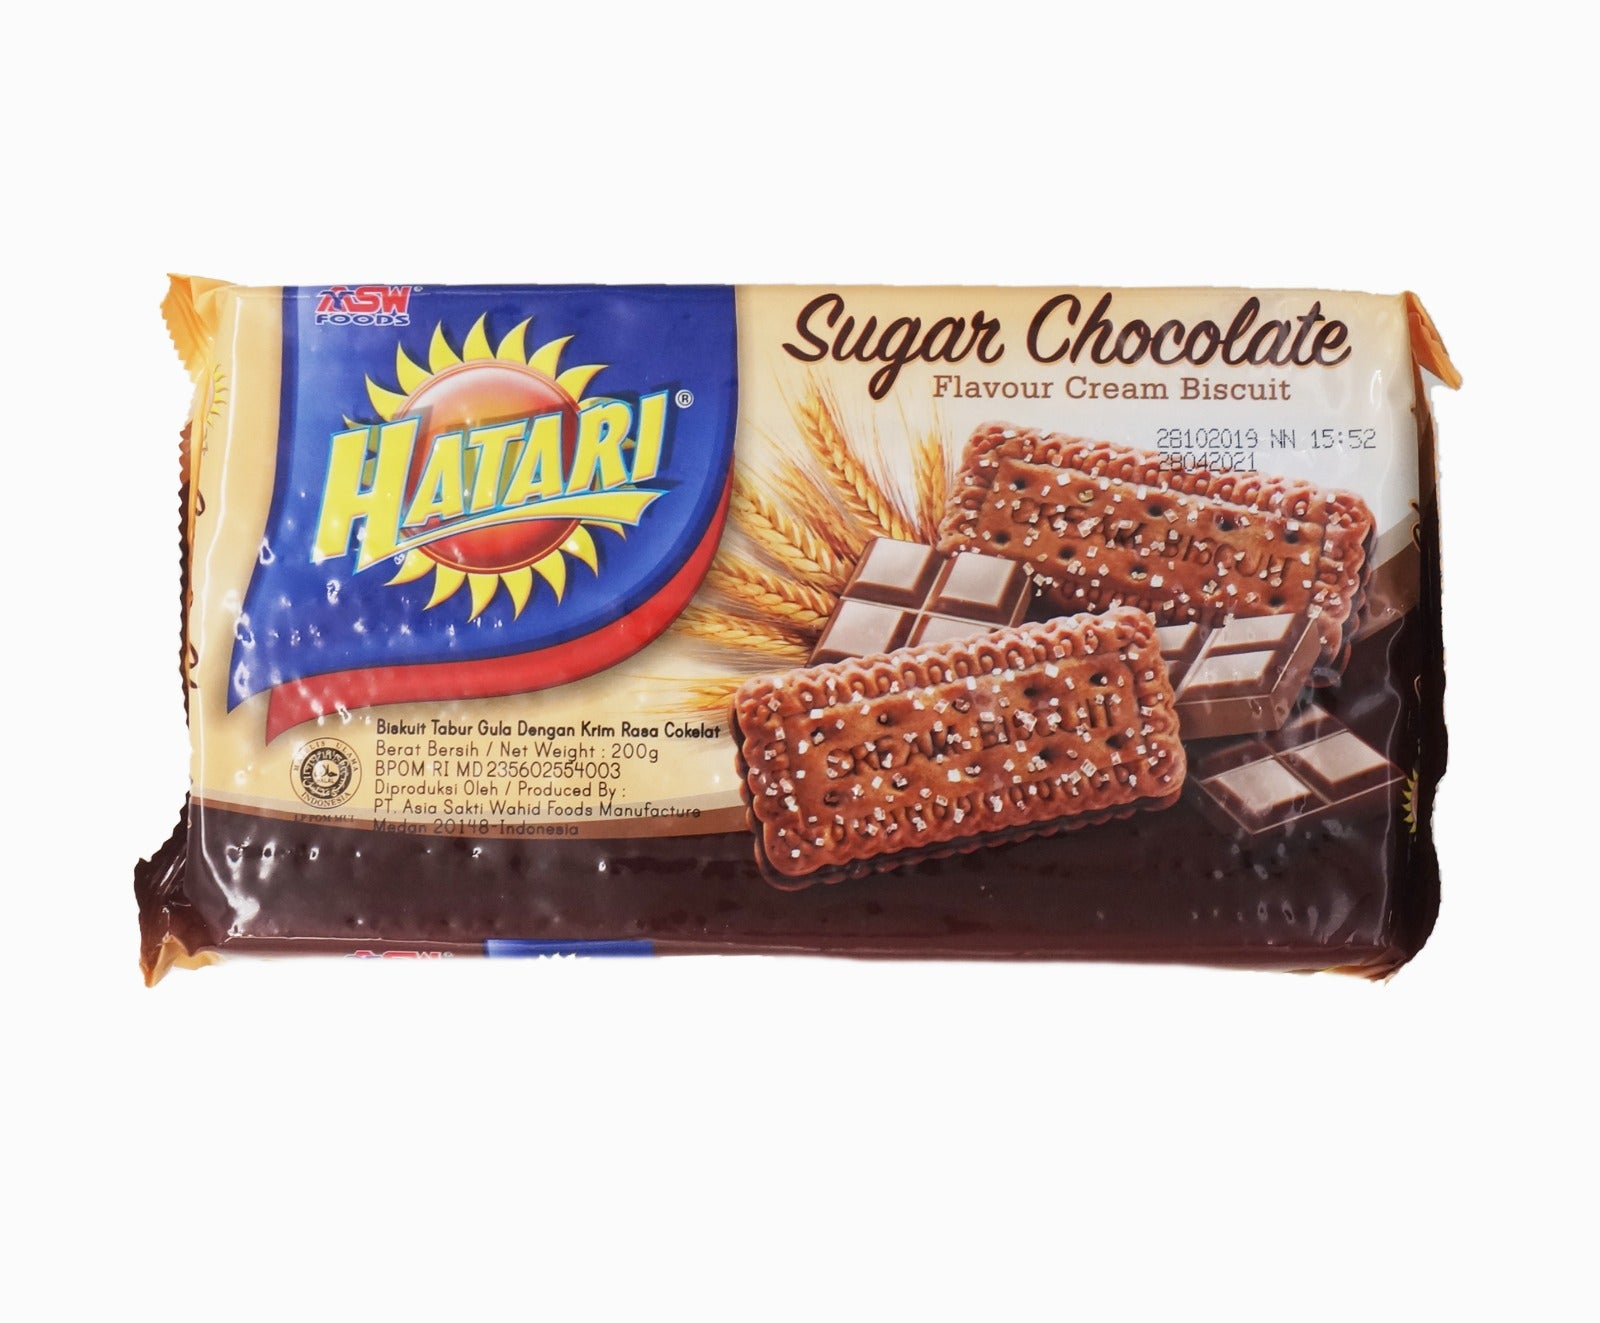 Hatari Cream Biscuit - Chocolate & Sugar (200g – Piece)